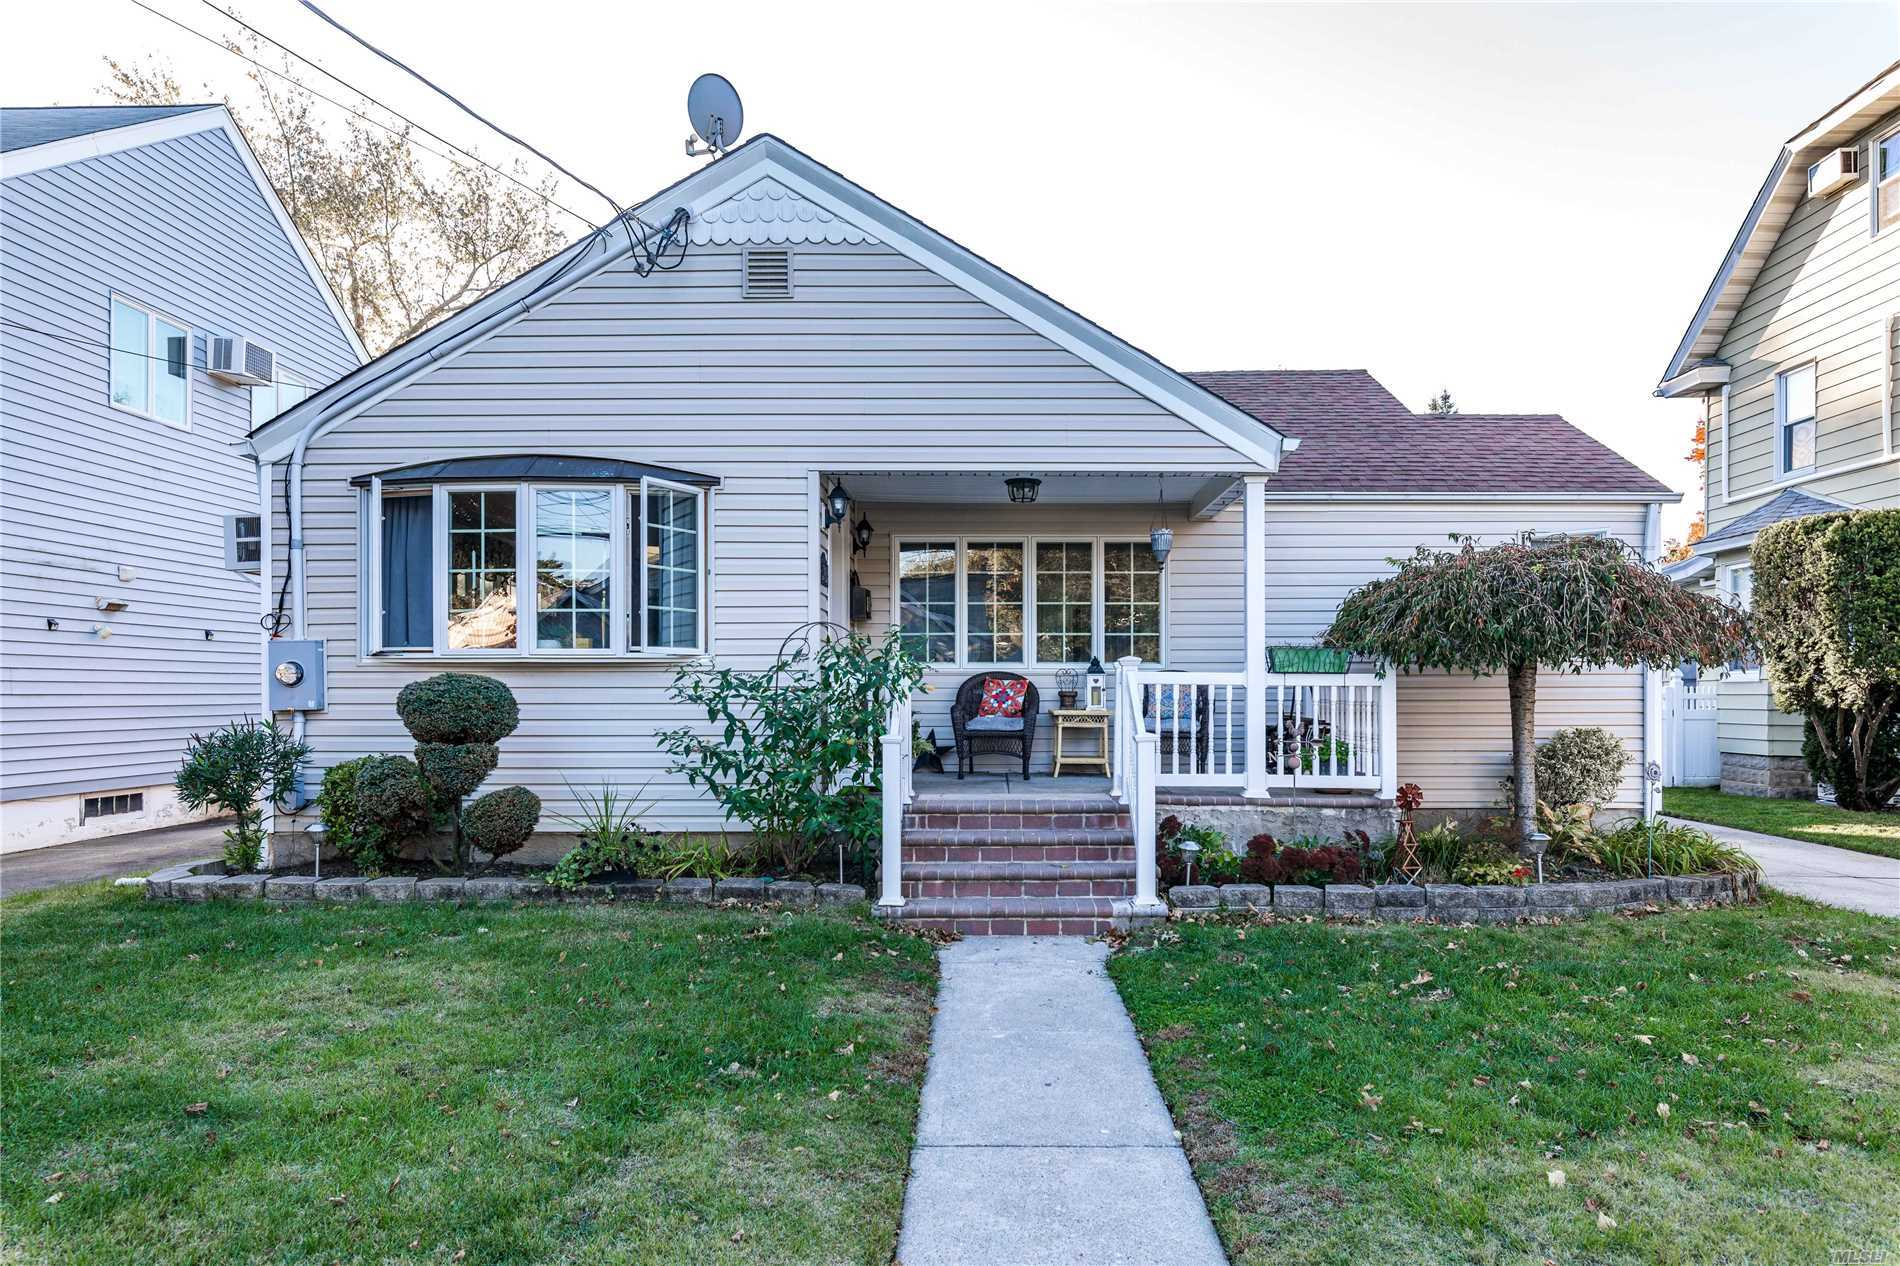 Beautiful, Spacious 3 Bedroom Ranch On A Quiet Tree Lined Street. Living Room With Fireplace, Formal Dining Room, Eat In Kitchen With Stainless Steel Appliances. Full Bath. Great Size Yard.